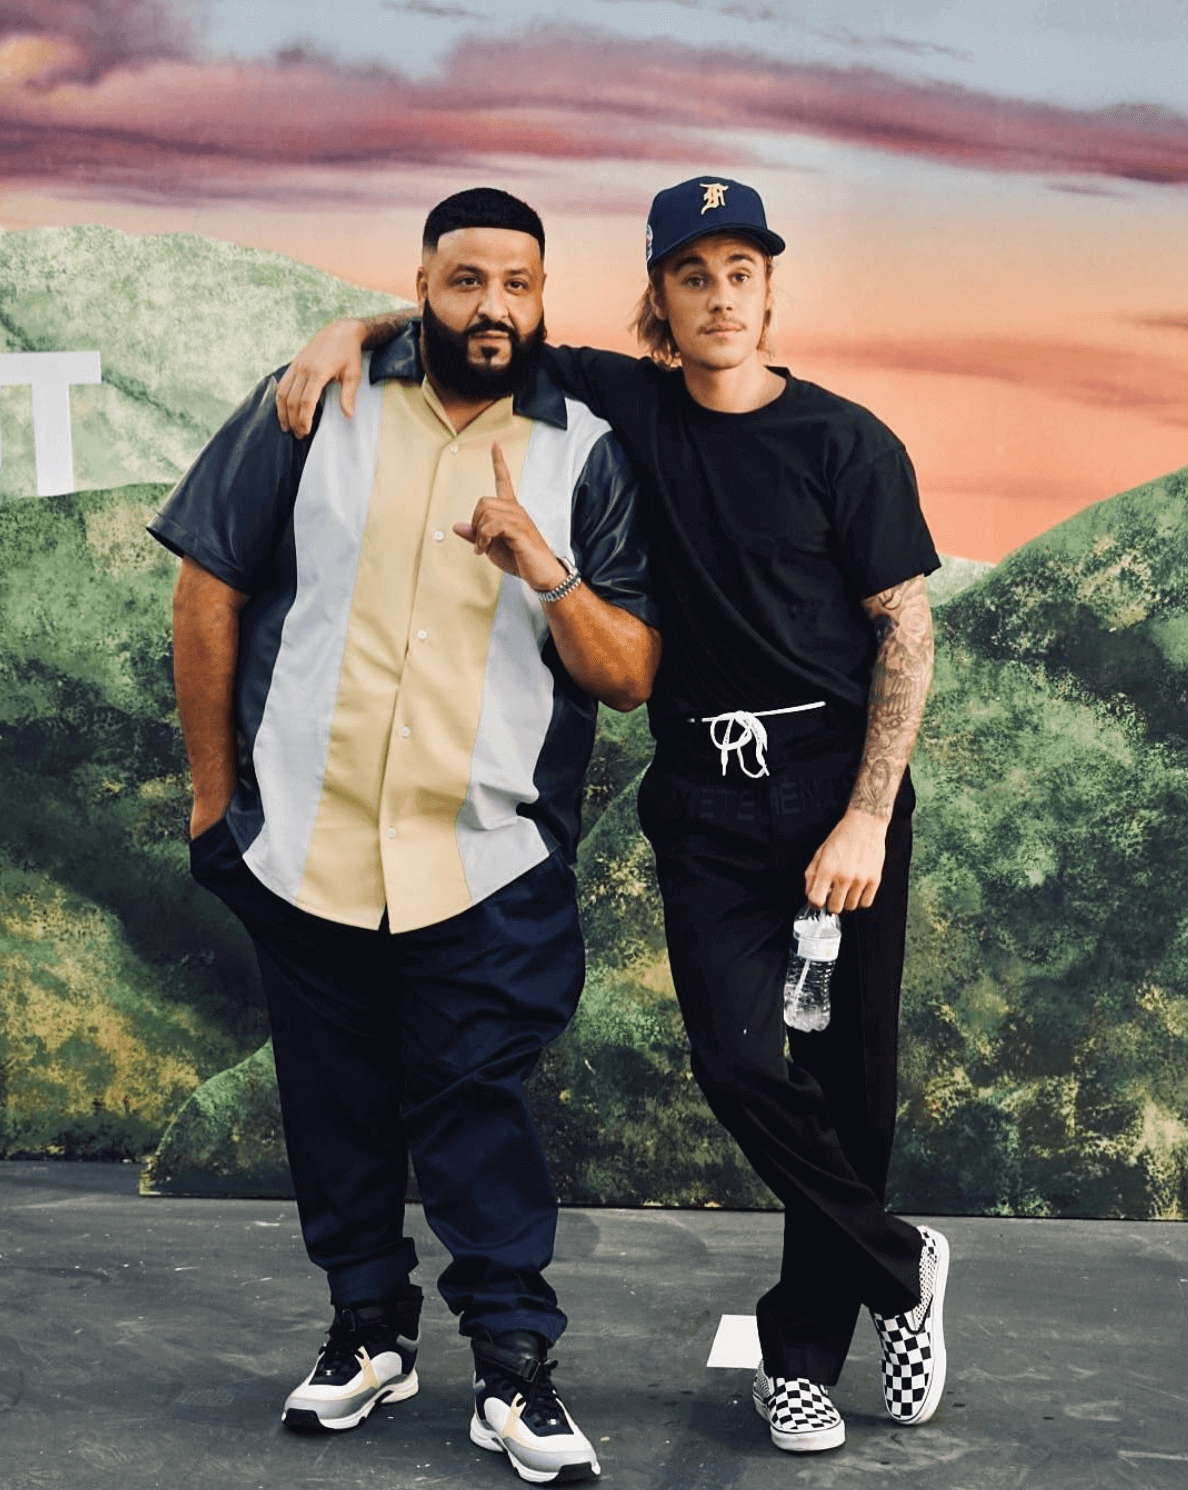 DJ Khaled in the Chanel Sneakers & Justin Bieber in the Vans Slip On